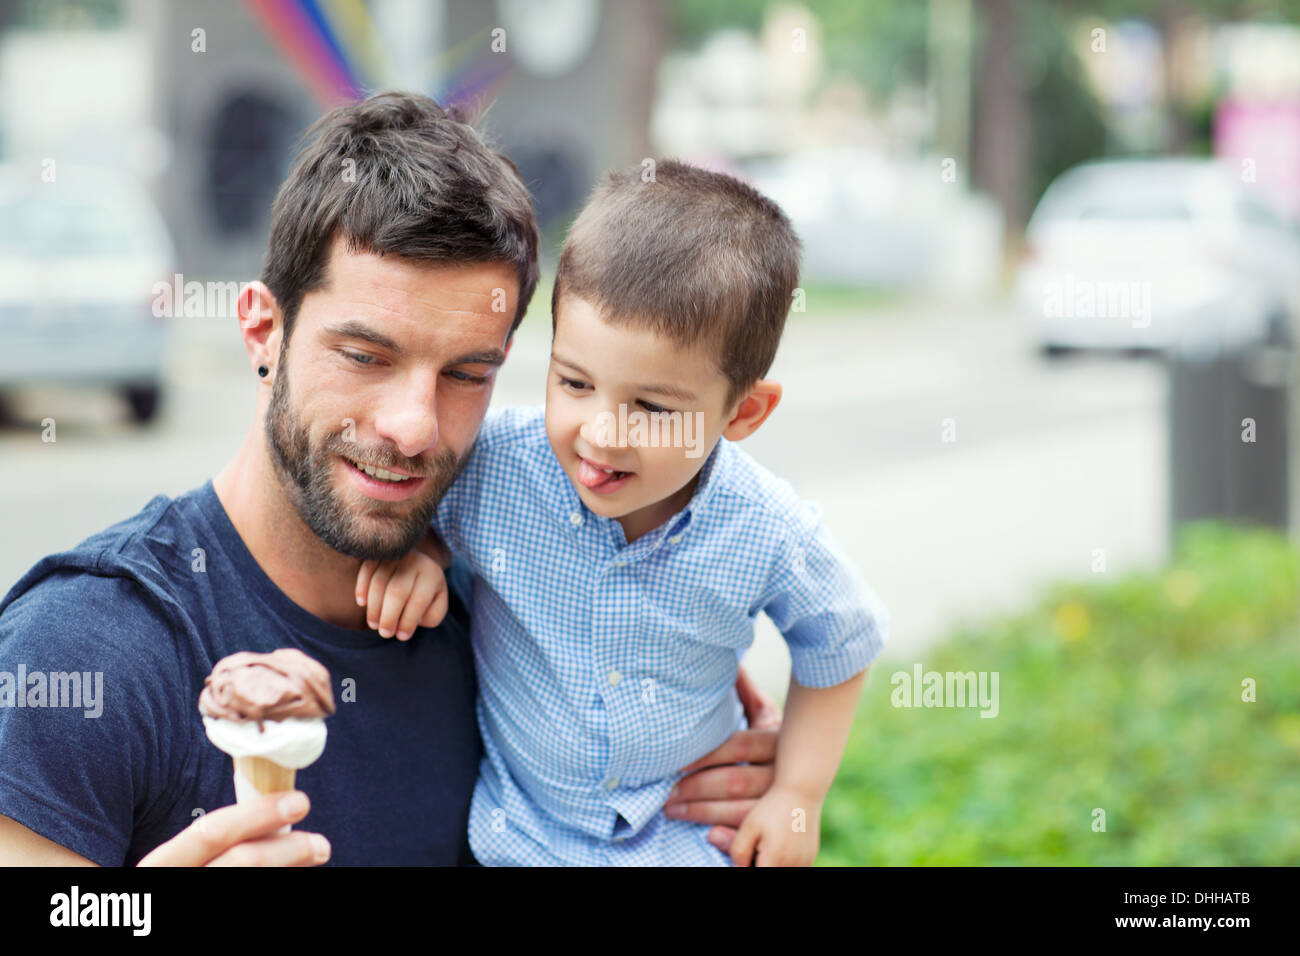 Father holding ice cream, son licking lips - Stock Image